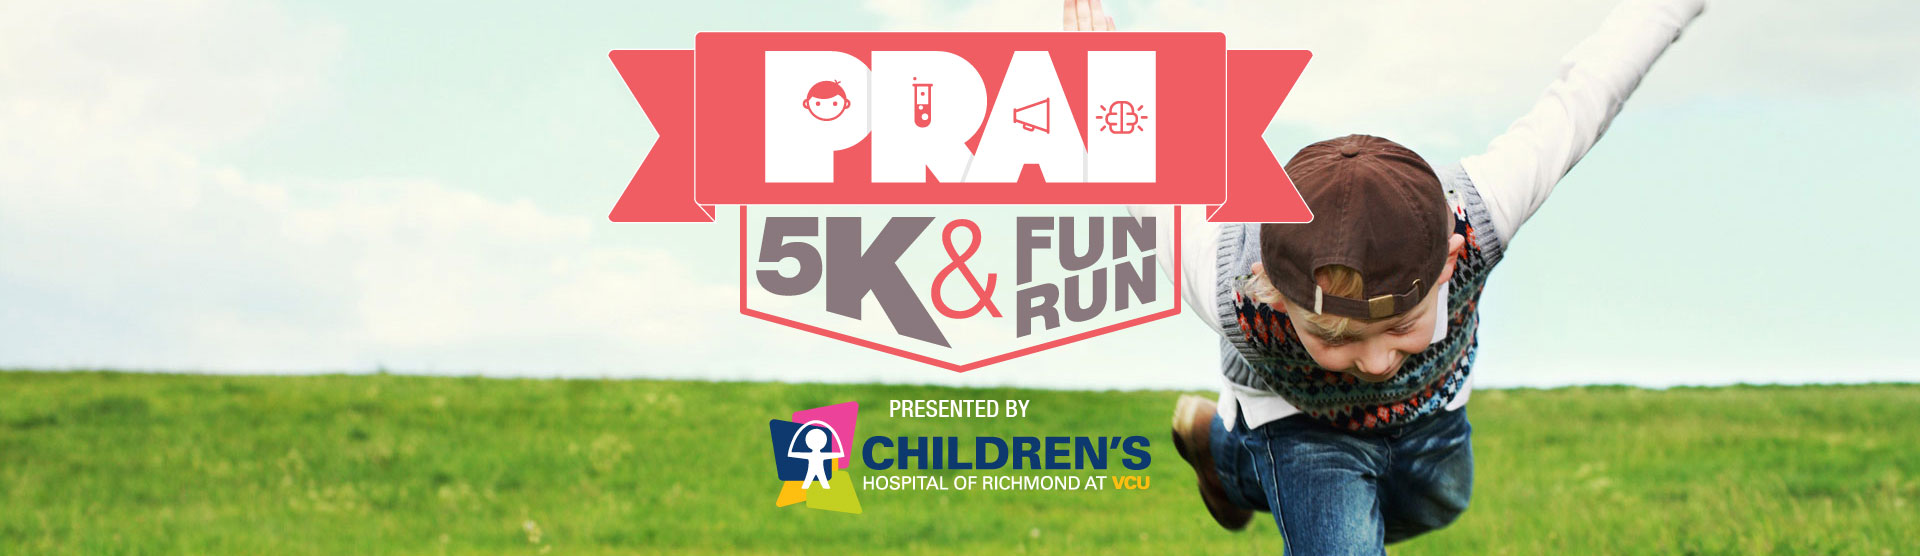 PRAI 5K & Fun Run